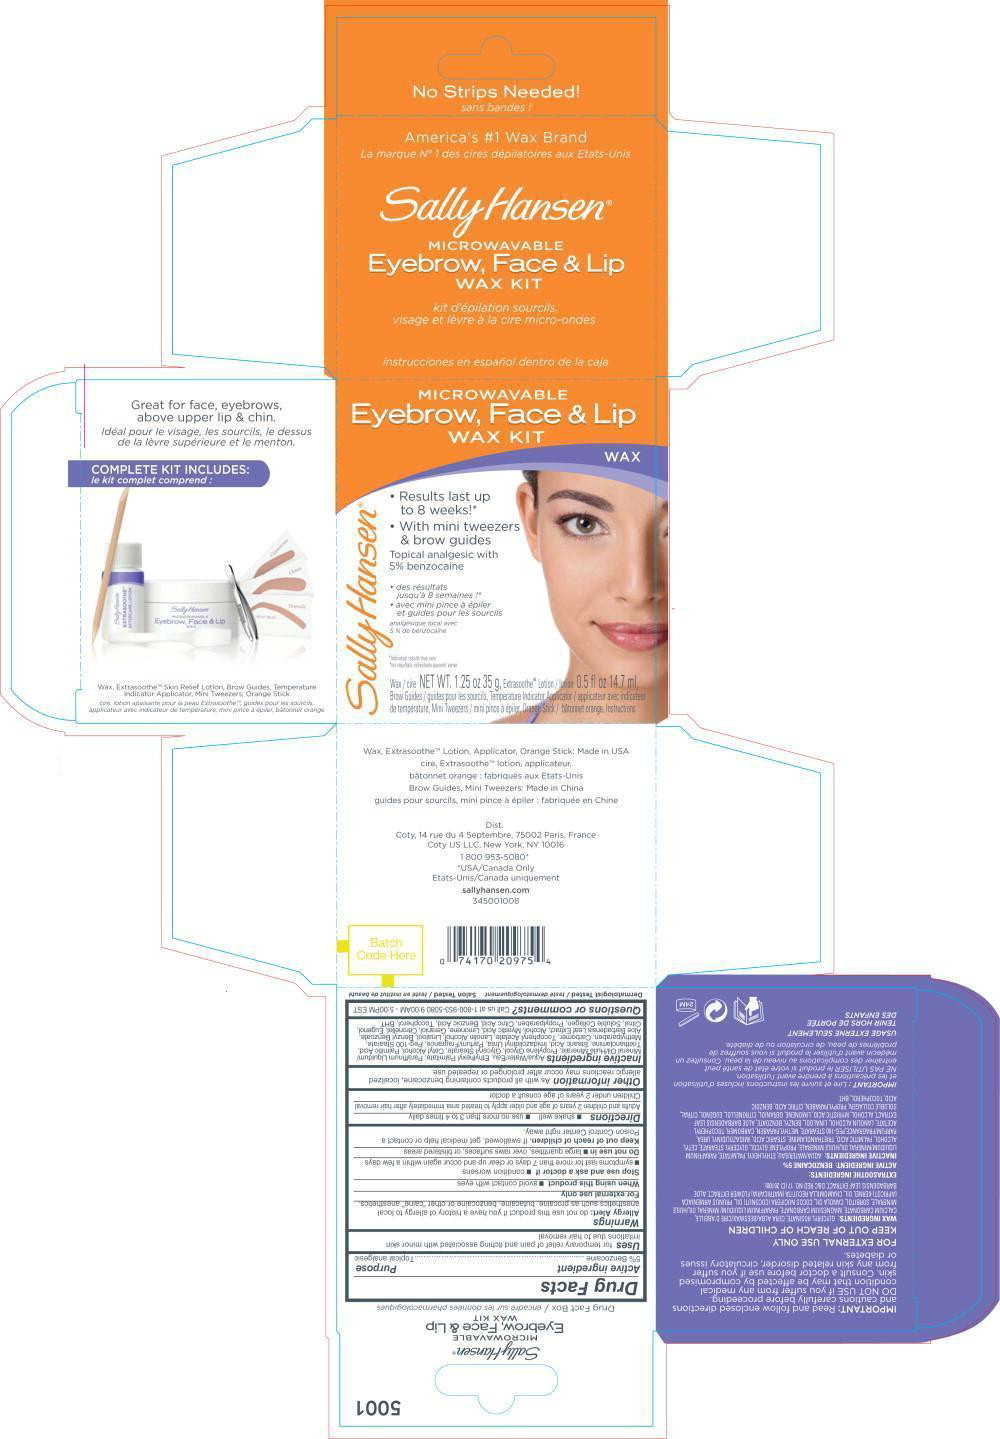 Sally Hansen Microwavable Eybrow, Face And Lip Wax Kit (Benzocaine) Kit [Coty Us Llc]